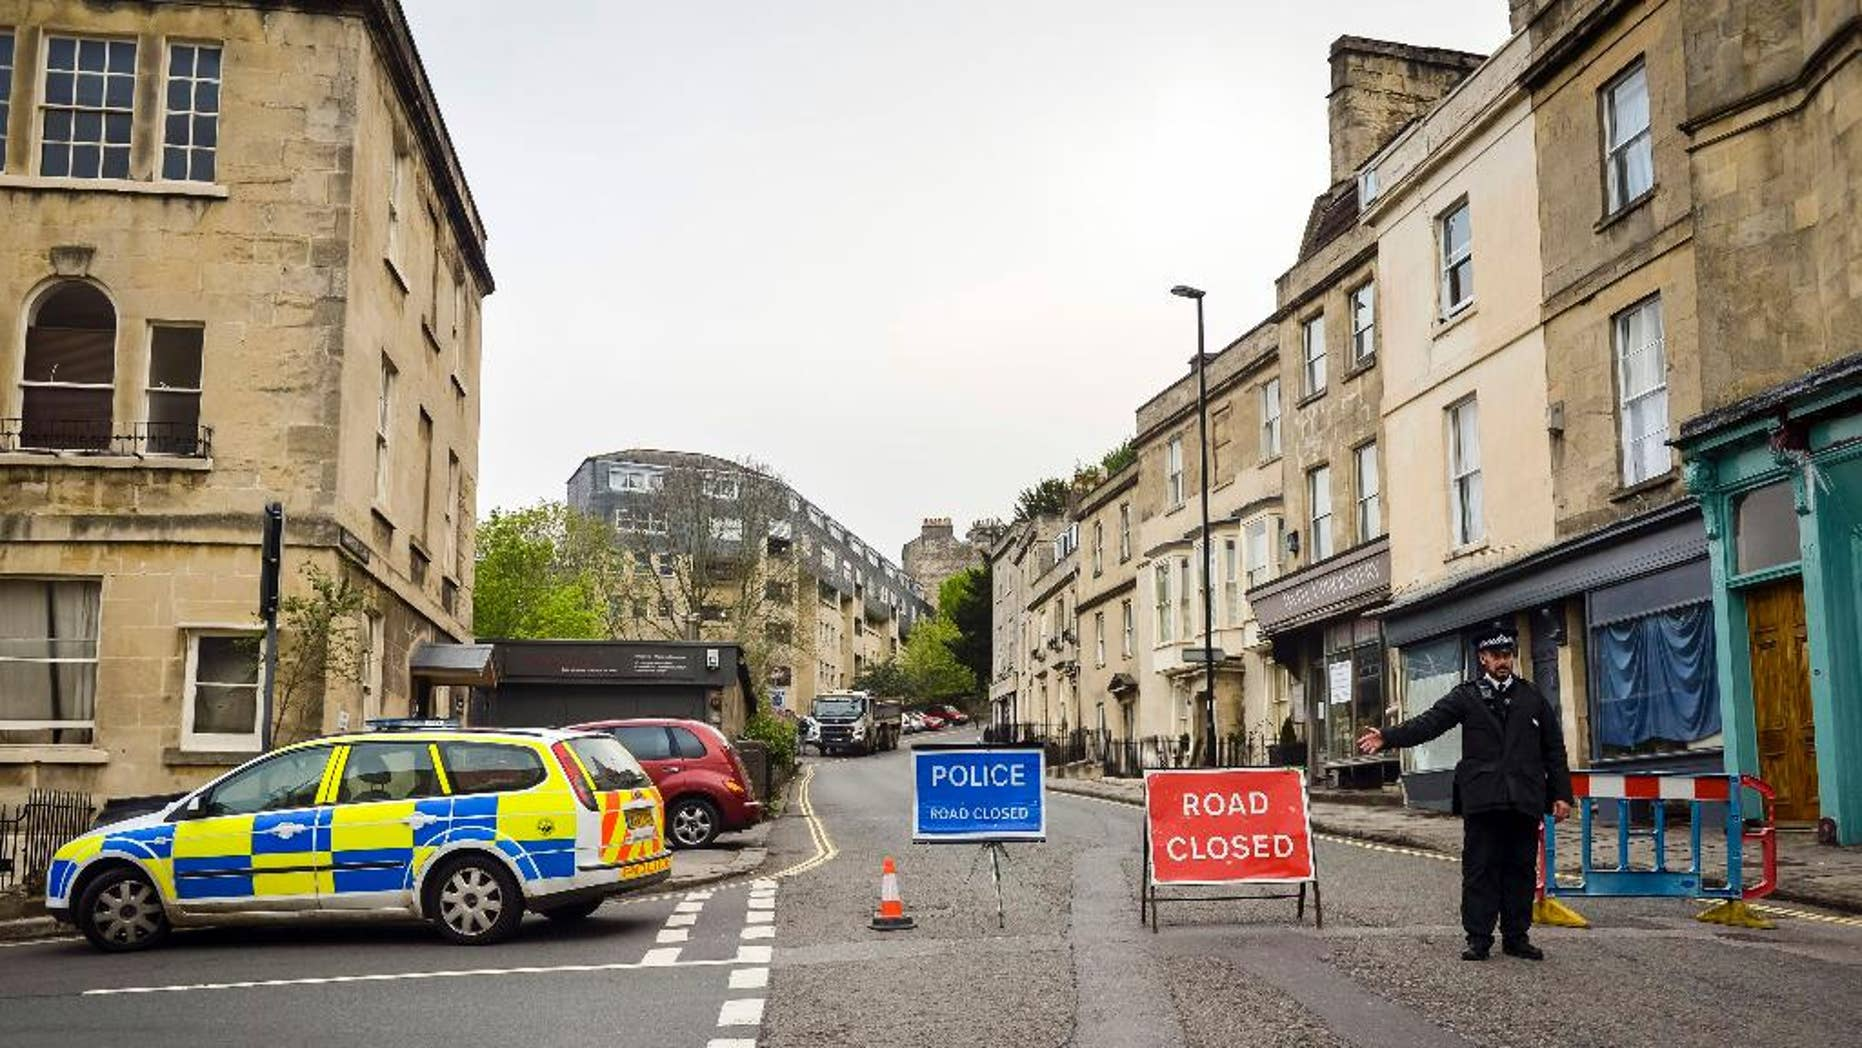 Police divert away traffic from an exclusion zone set up after contractors unearthed a Second World War shell in Bath, England, Friday, May 13, 2016. Hundreds of people have been told to leave homes and businesses in the English city of Bath after a 500-pound (225-kilogram) unexploded World War II shell was found under a school playground. Police evacuated residents for 300 meters (yards) around the device, found during construction work at the disused Royal High School. Some spent the night at a local racecourse. (Ben Birchall/PA via AP)      UNITED KINGDOM OUT        -     NO SALES       -       NO ARCHIVES